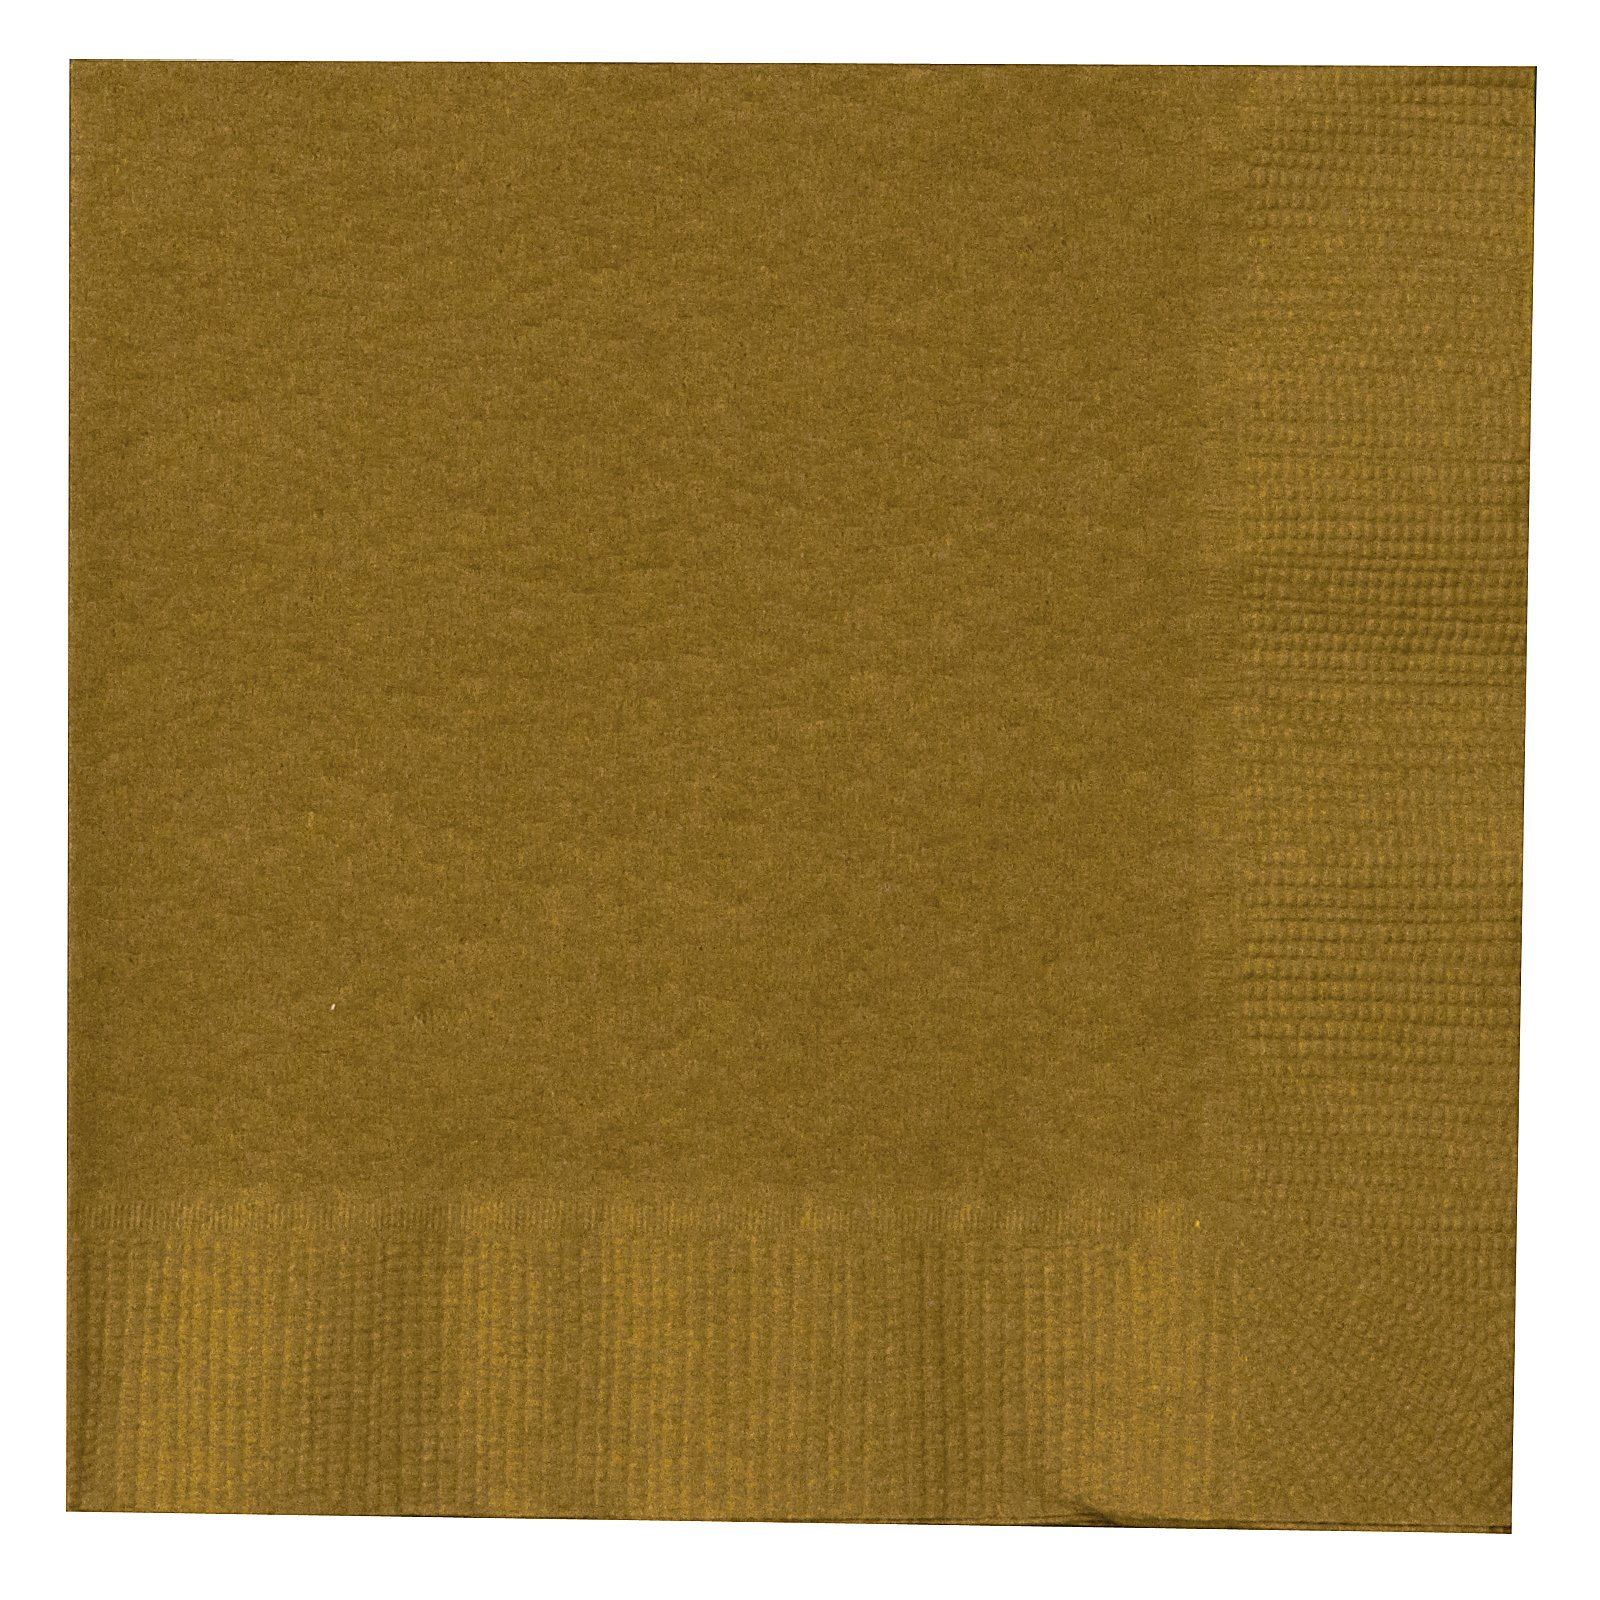 Glittering Gold (Gold) Beverage Napkins (50 count)